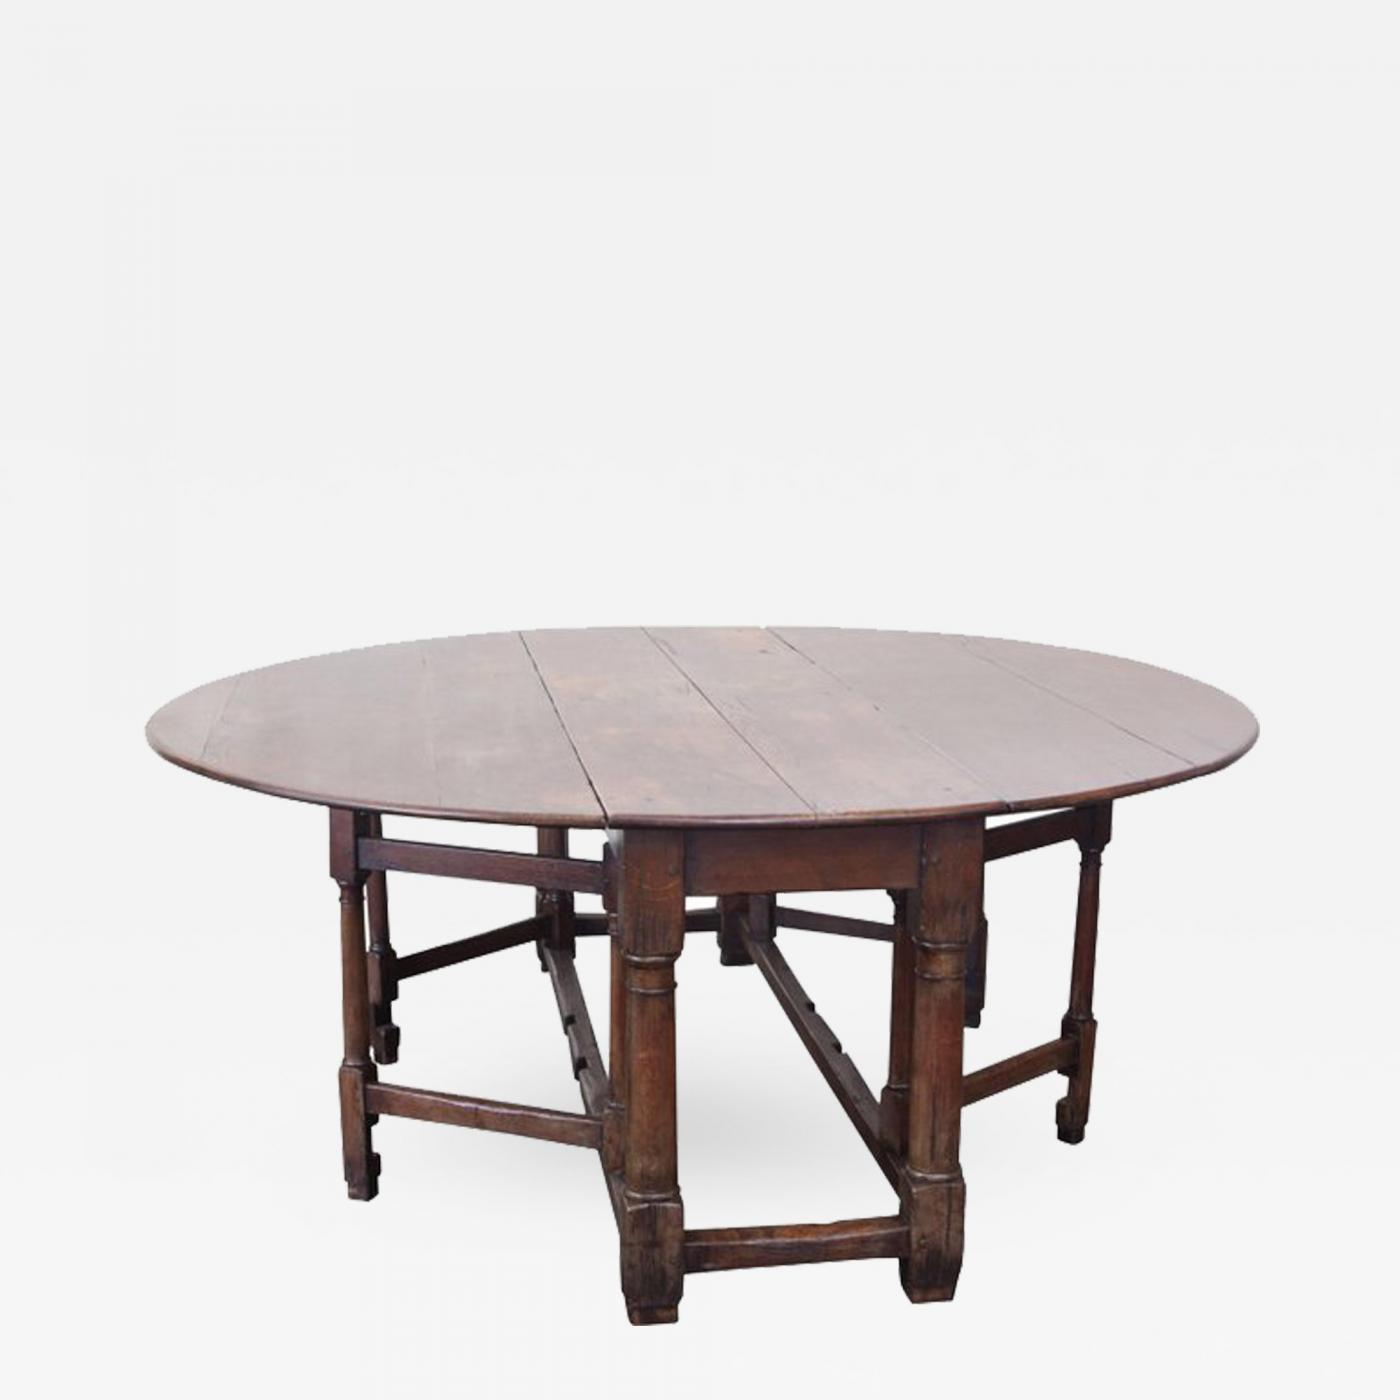 Antique Drop Leaf Table >> 19th Century Antique Drop Leaf Table In Oak